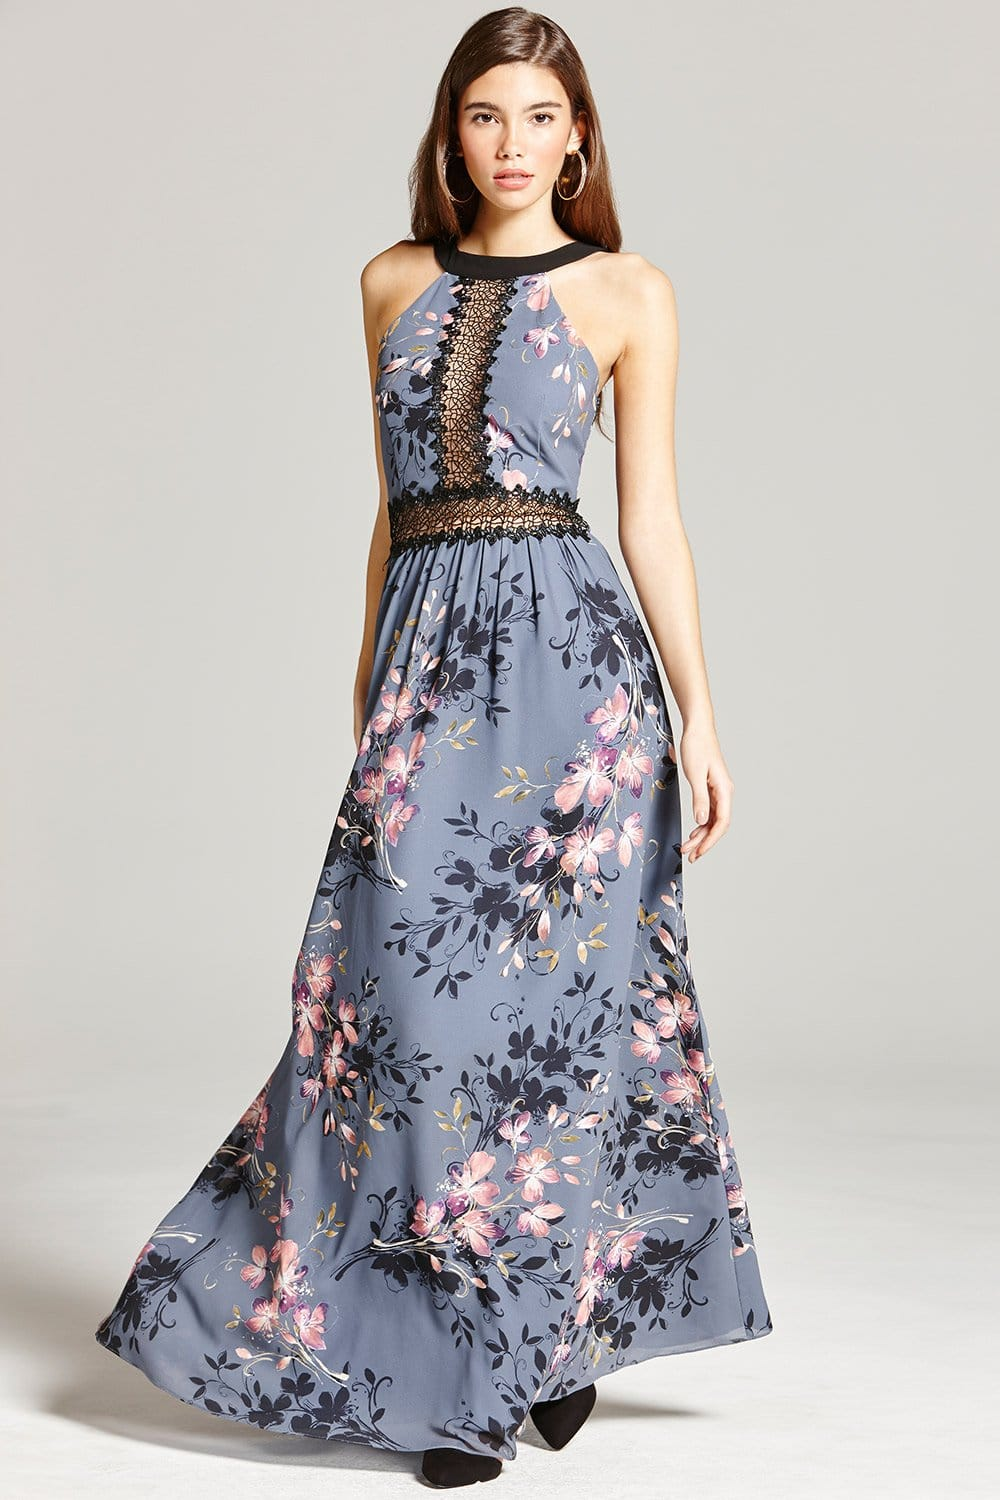 Floral Print and Lace Maxi Dress - from Little Mistress UK